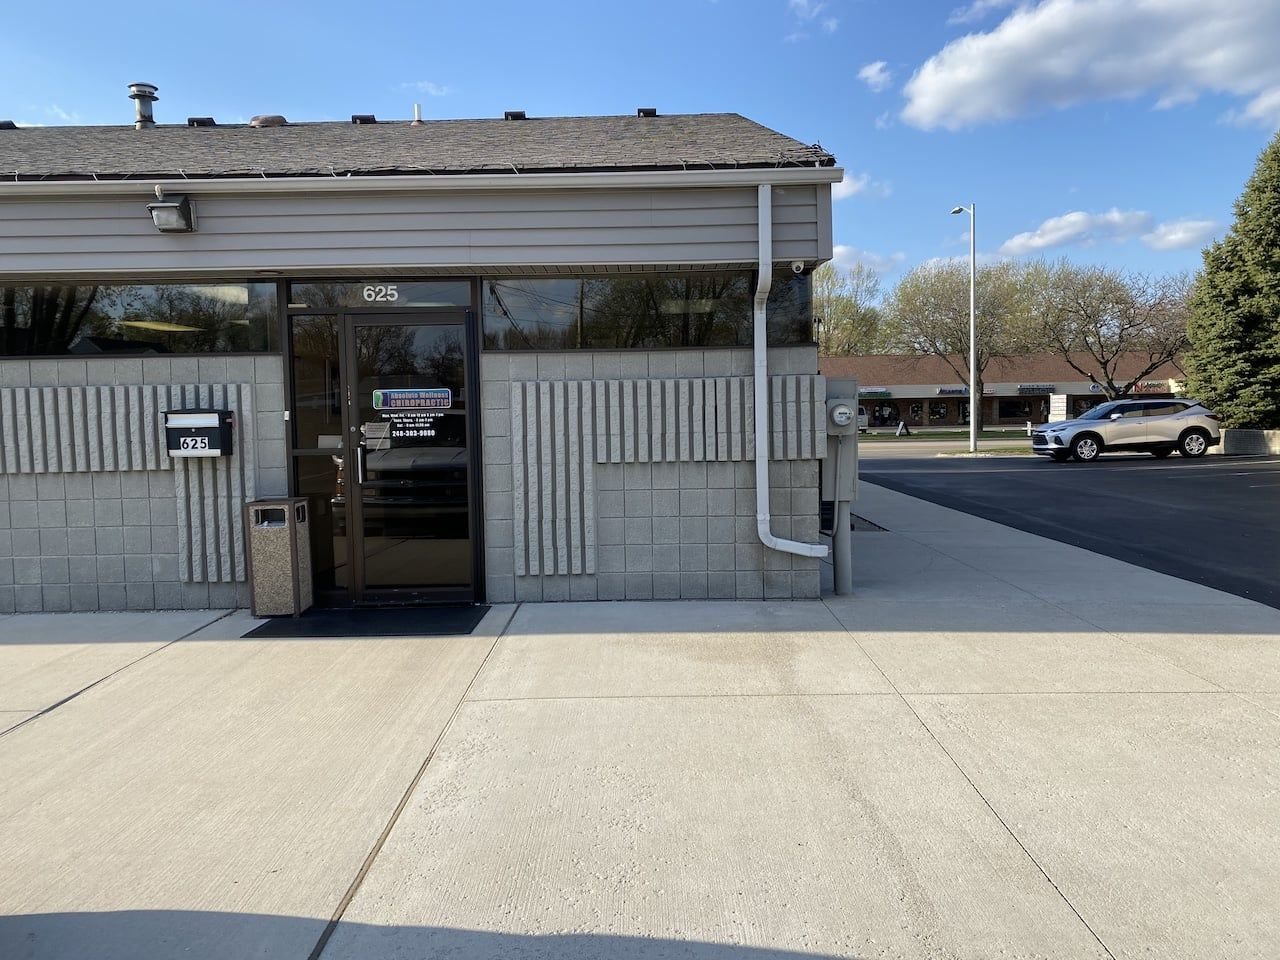 Absolute Wellness Chiropractic Entrance near Troy, Michigan